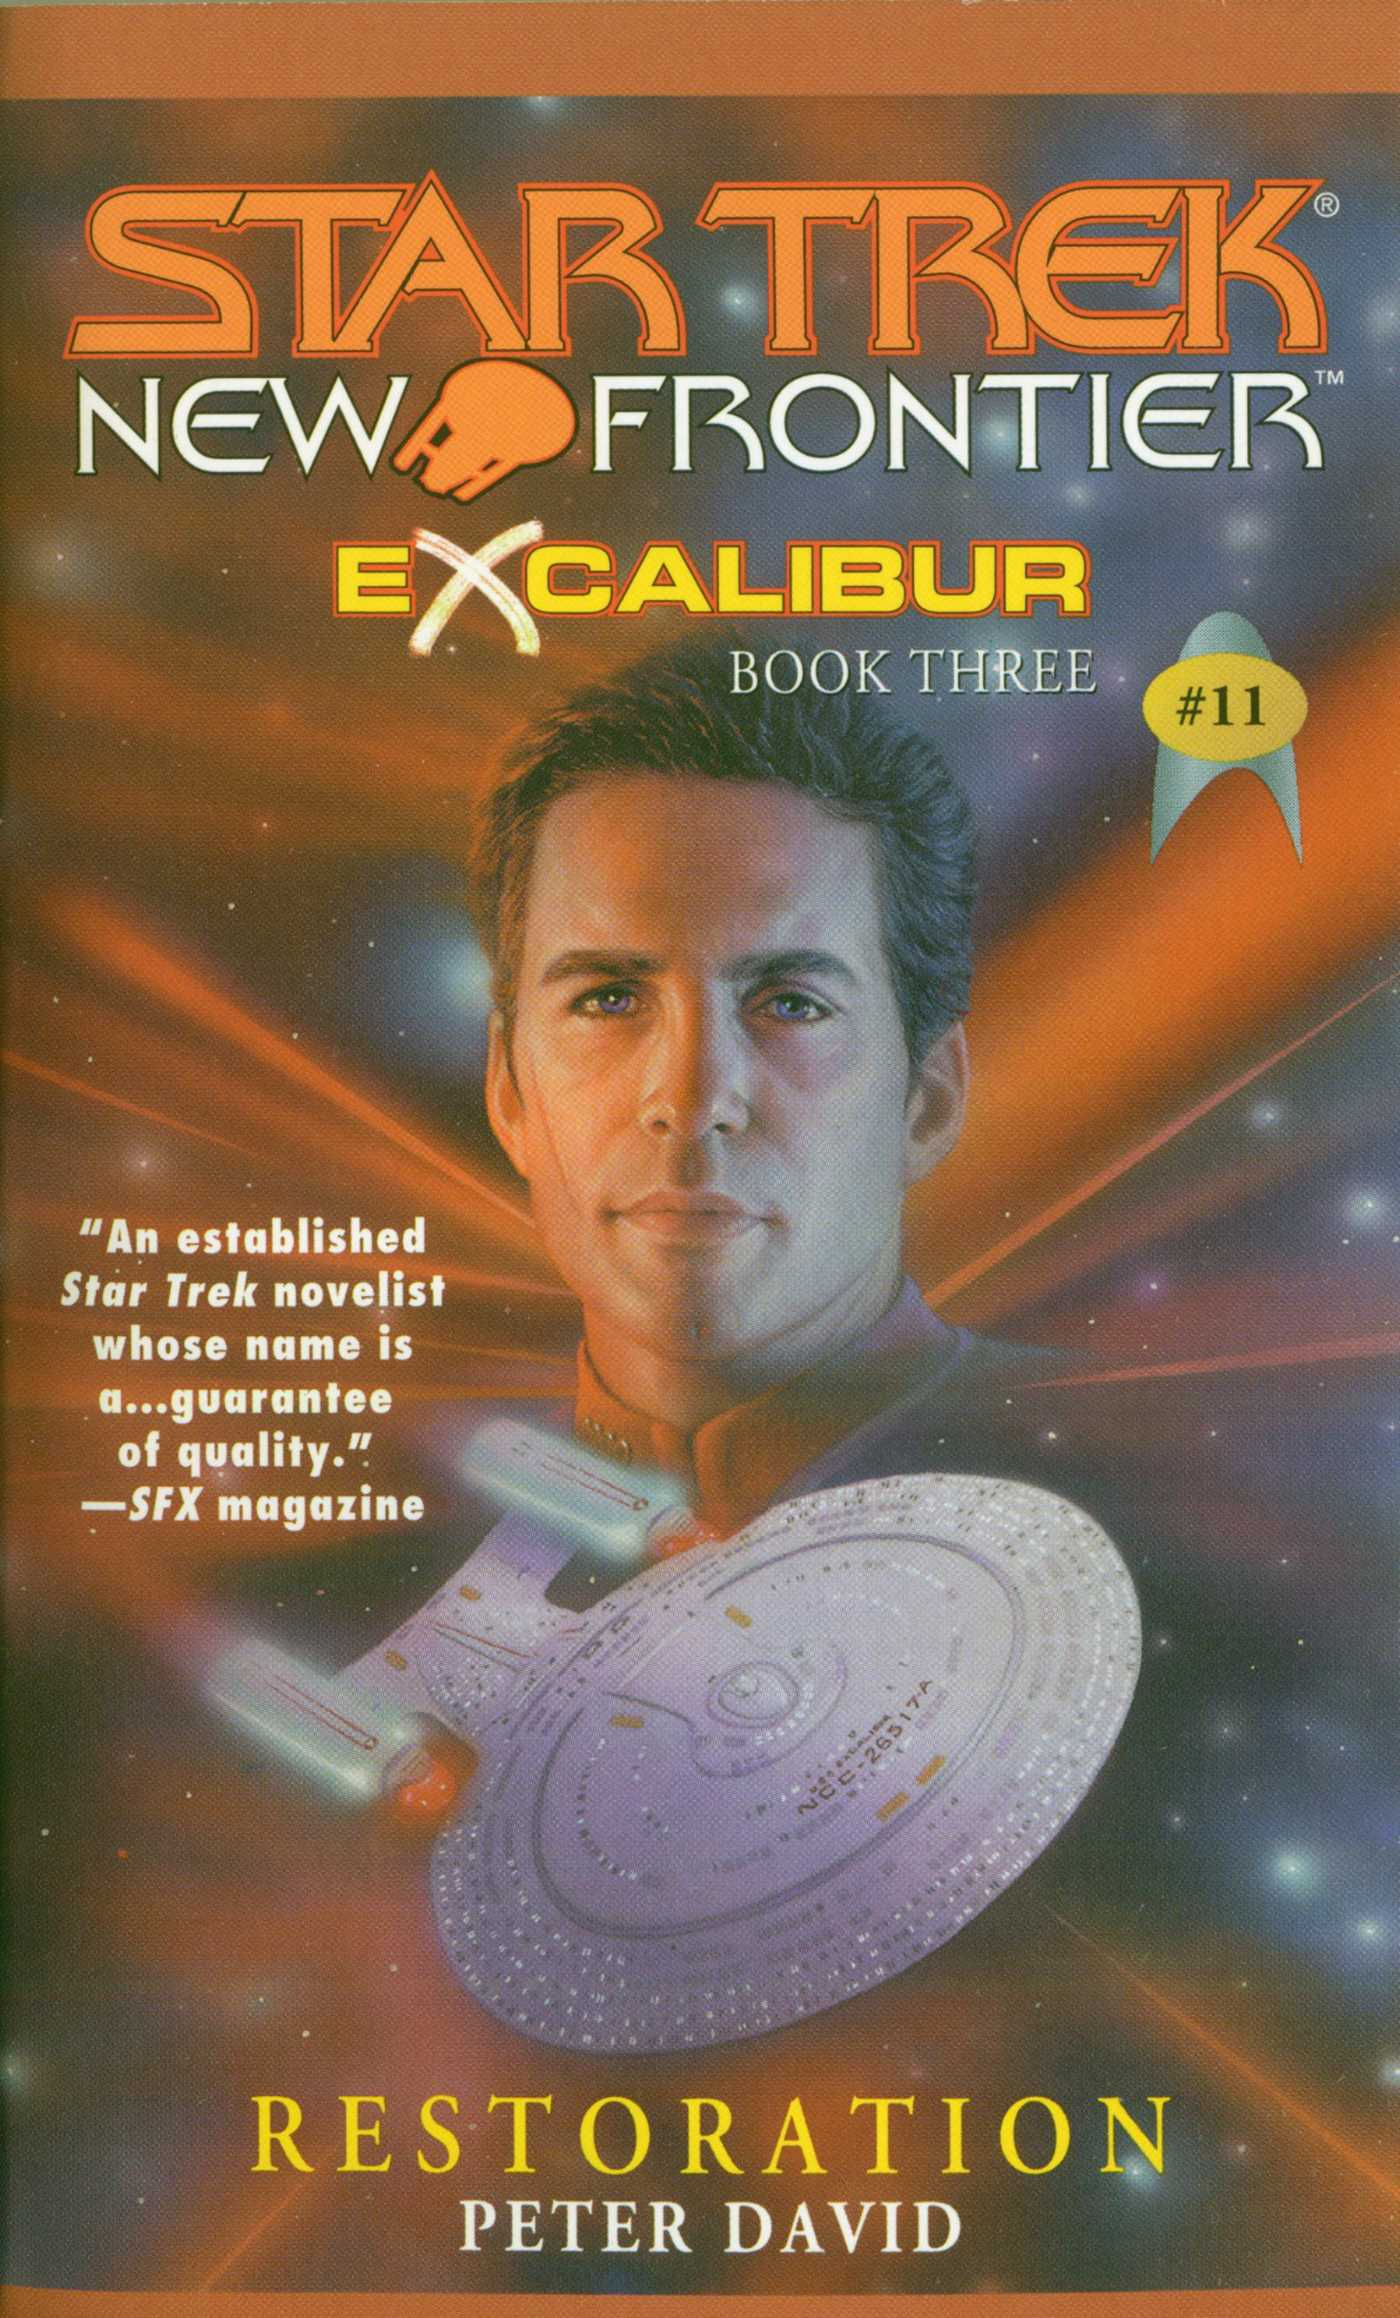 Star-trek-new-frontier-excalibur-3-restoration-9780743422420_hr